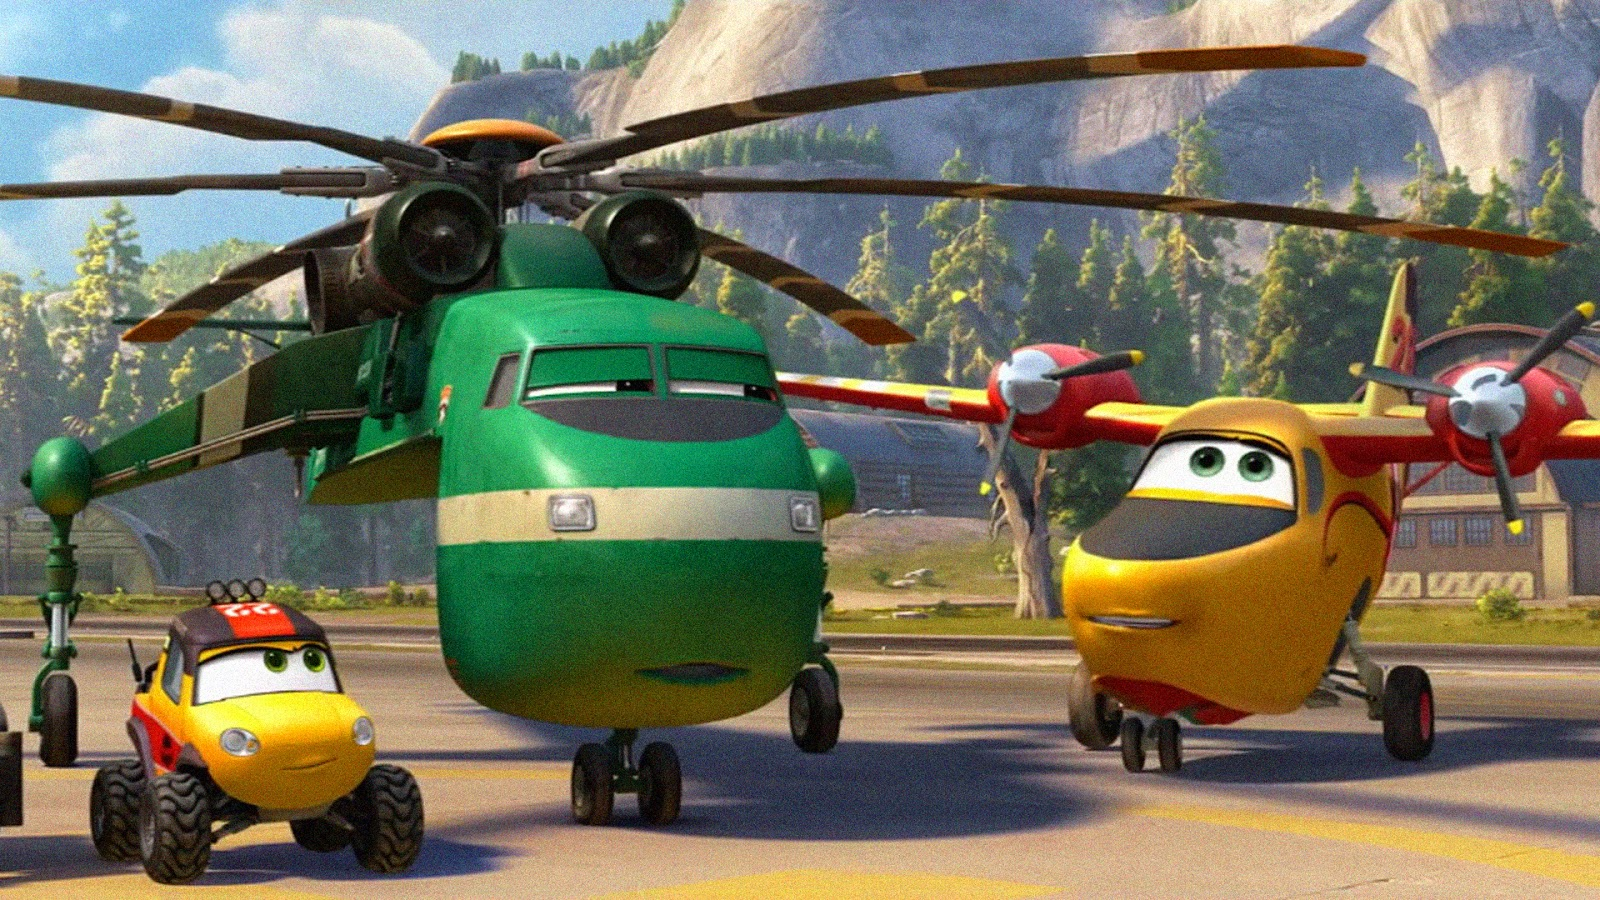 Planes fire rescue soars home on blu ray and dvd nerdophiles these planes and vehicles are actually similiar to the real life equipment real firefighters would use voltagebd Choice Image